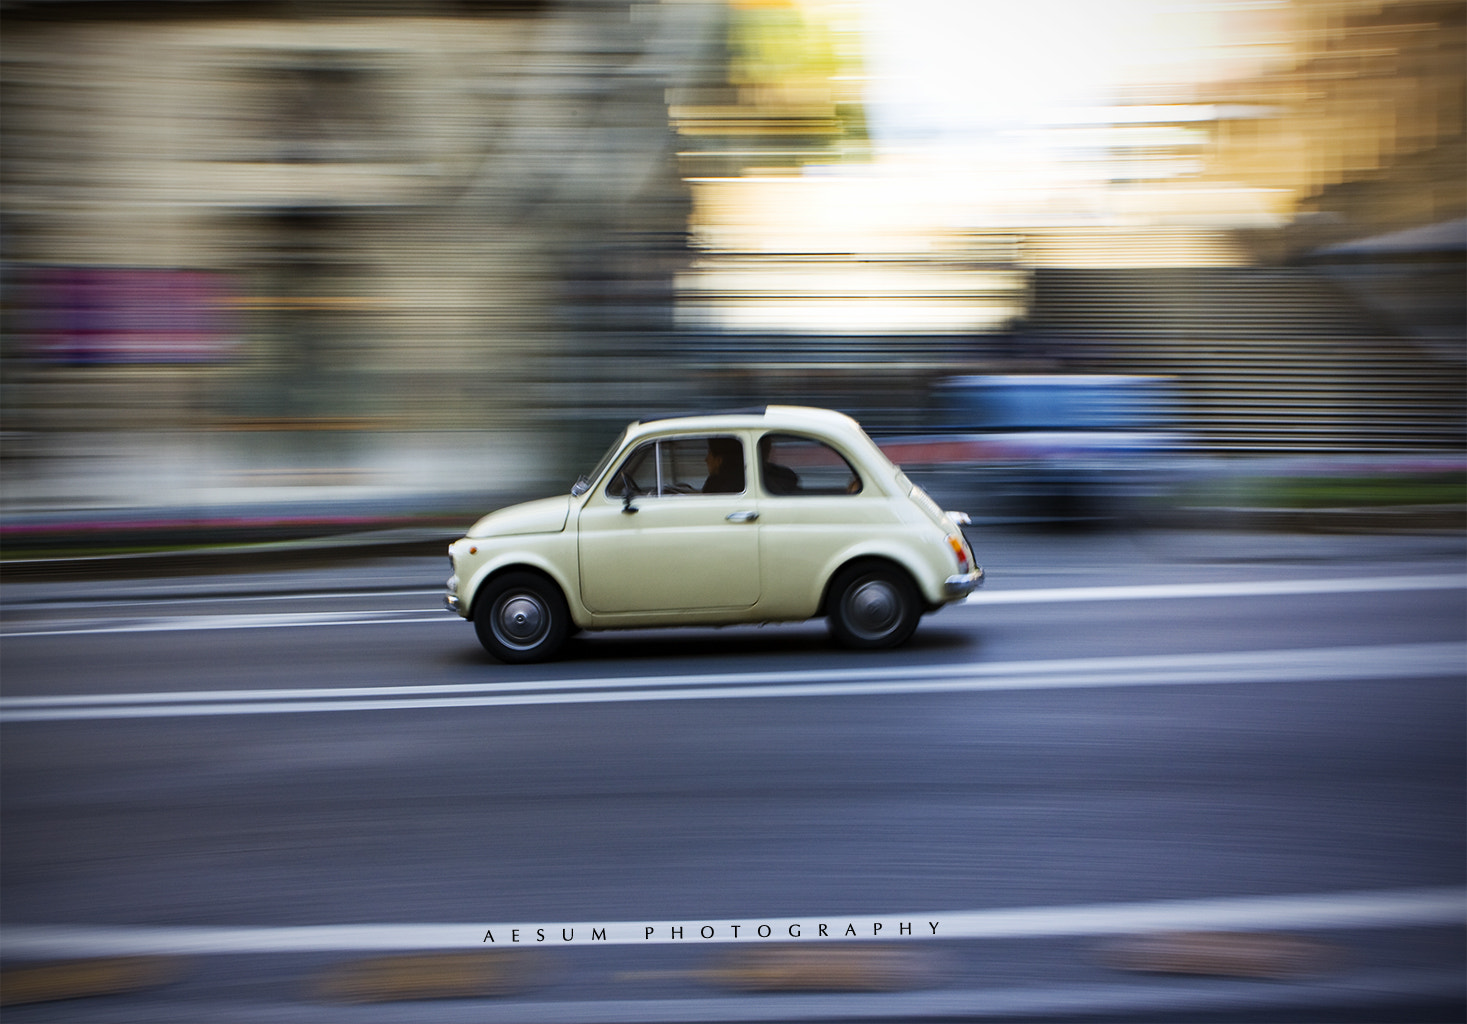 Photograph Fiat 500 by Angelo Domini on 500px